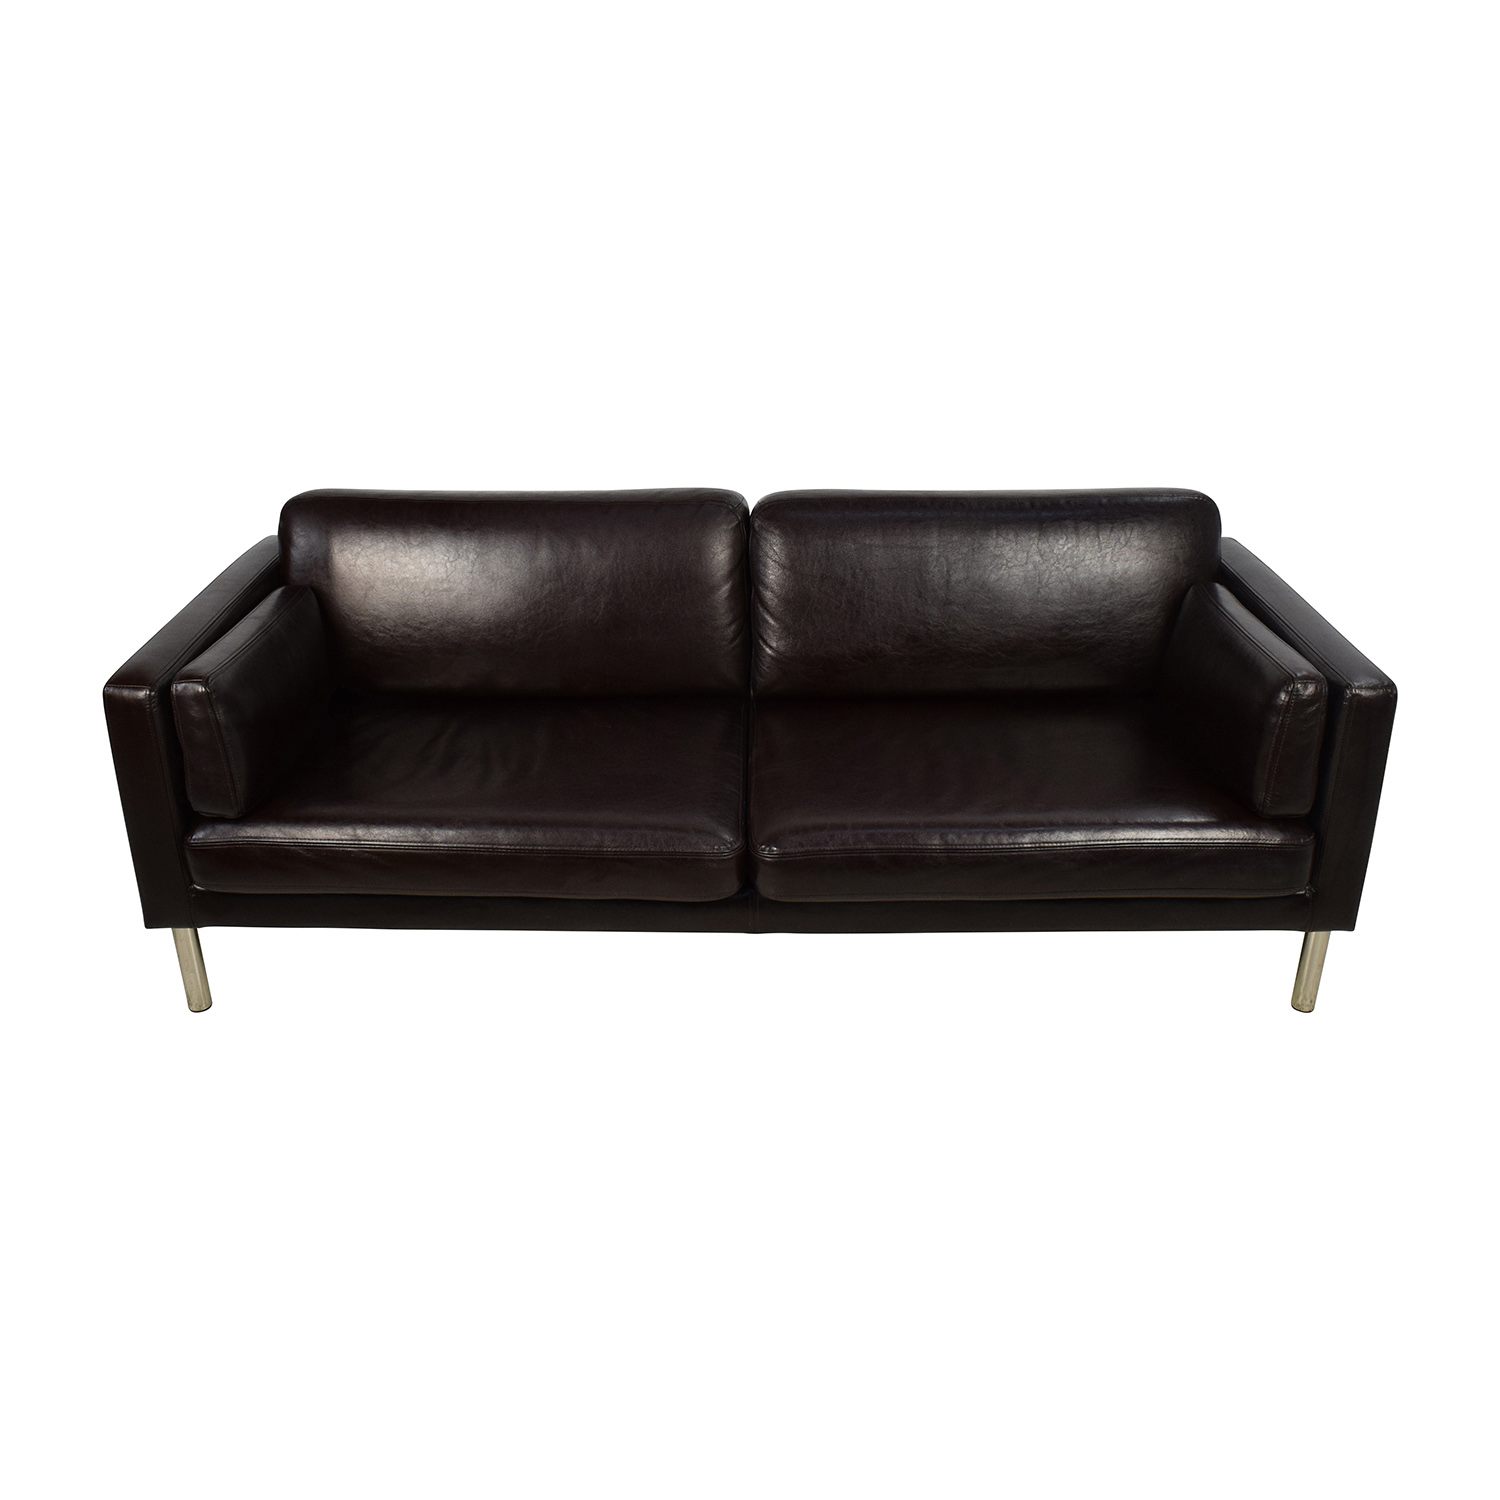 Excellent 76% OFF - Brown Leather Sofa with Chrome Legs / Sofas VT38